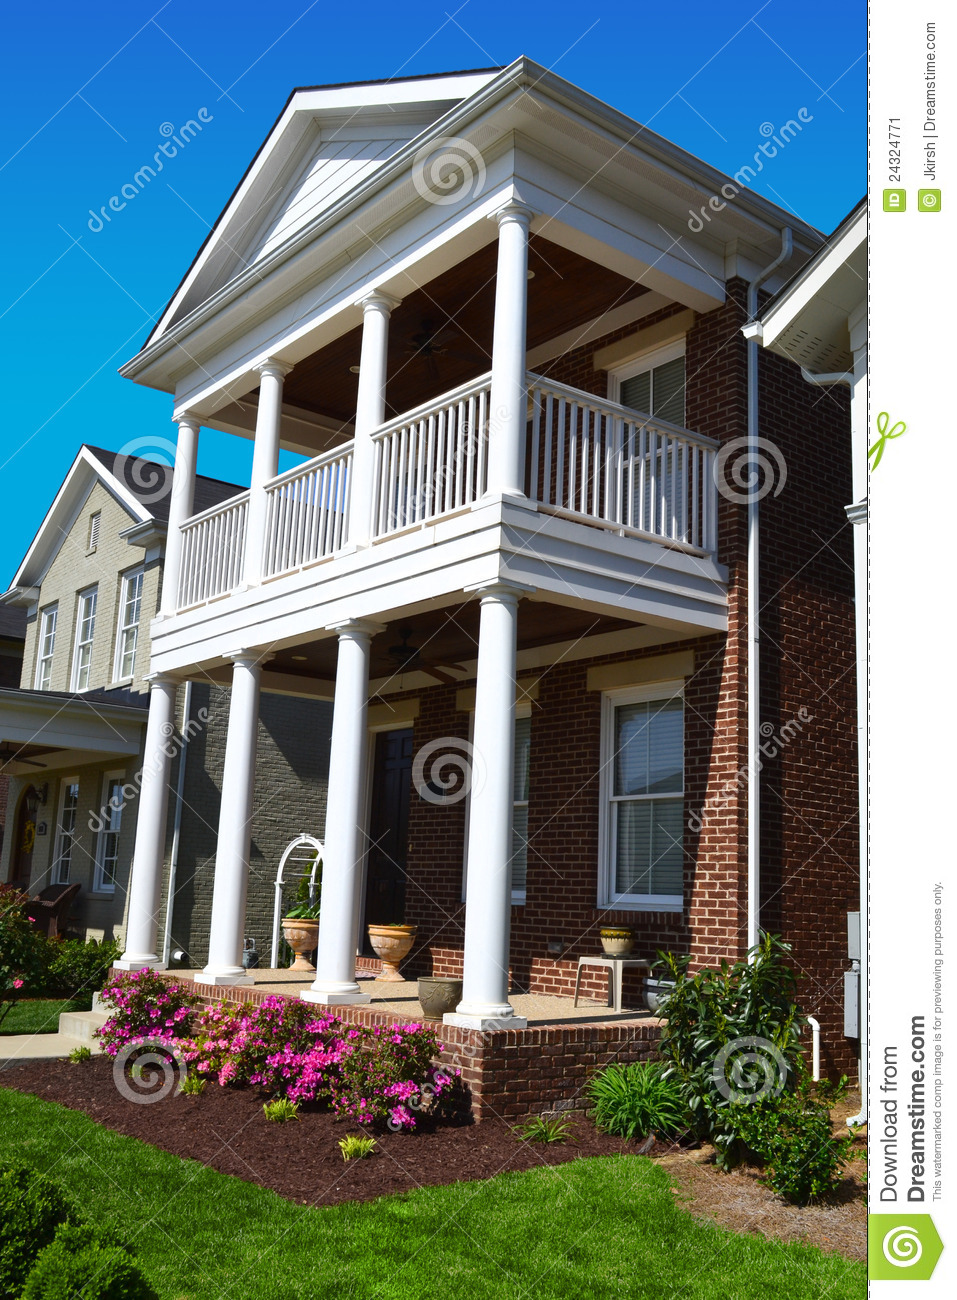 Brick cape cod style home with porch stock image image for Cape cod house with porch